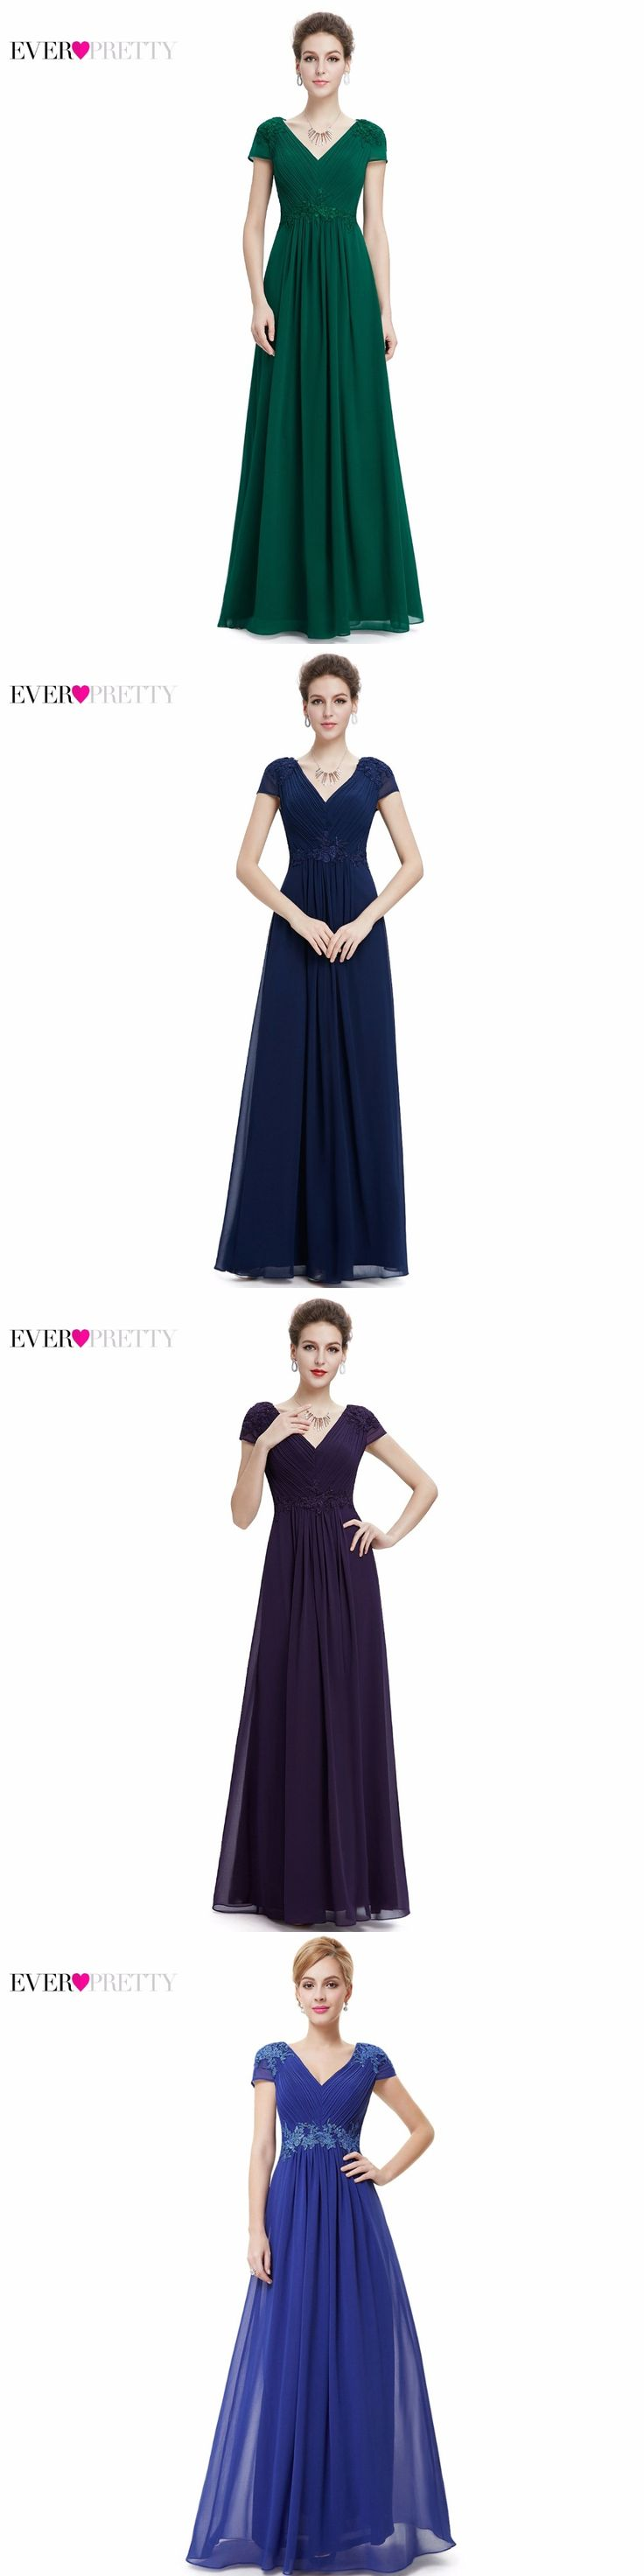 [Clearance Sale] Prom Dresses 2017 Ever Pretty HE08467SB Women Sexy V-Neck Ruched Empire Appliques Long Blue Prom Dresses